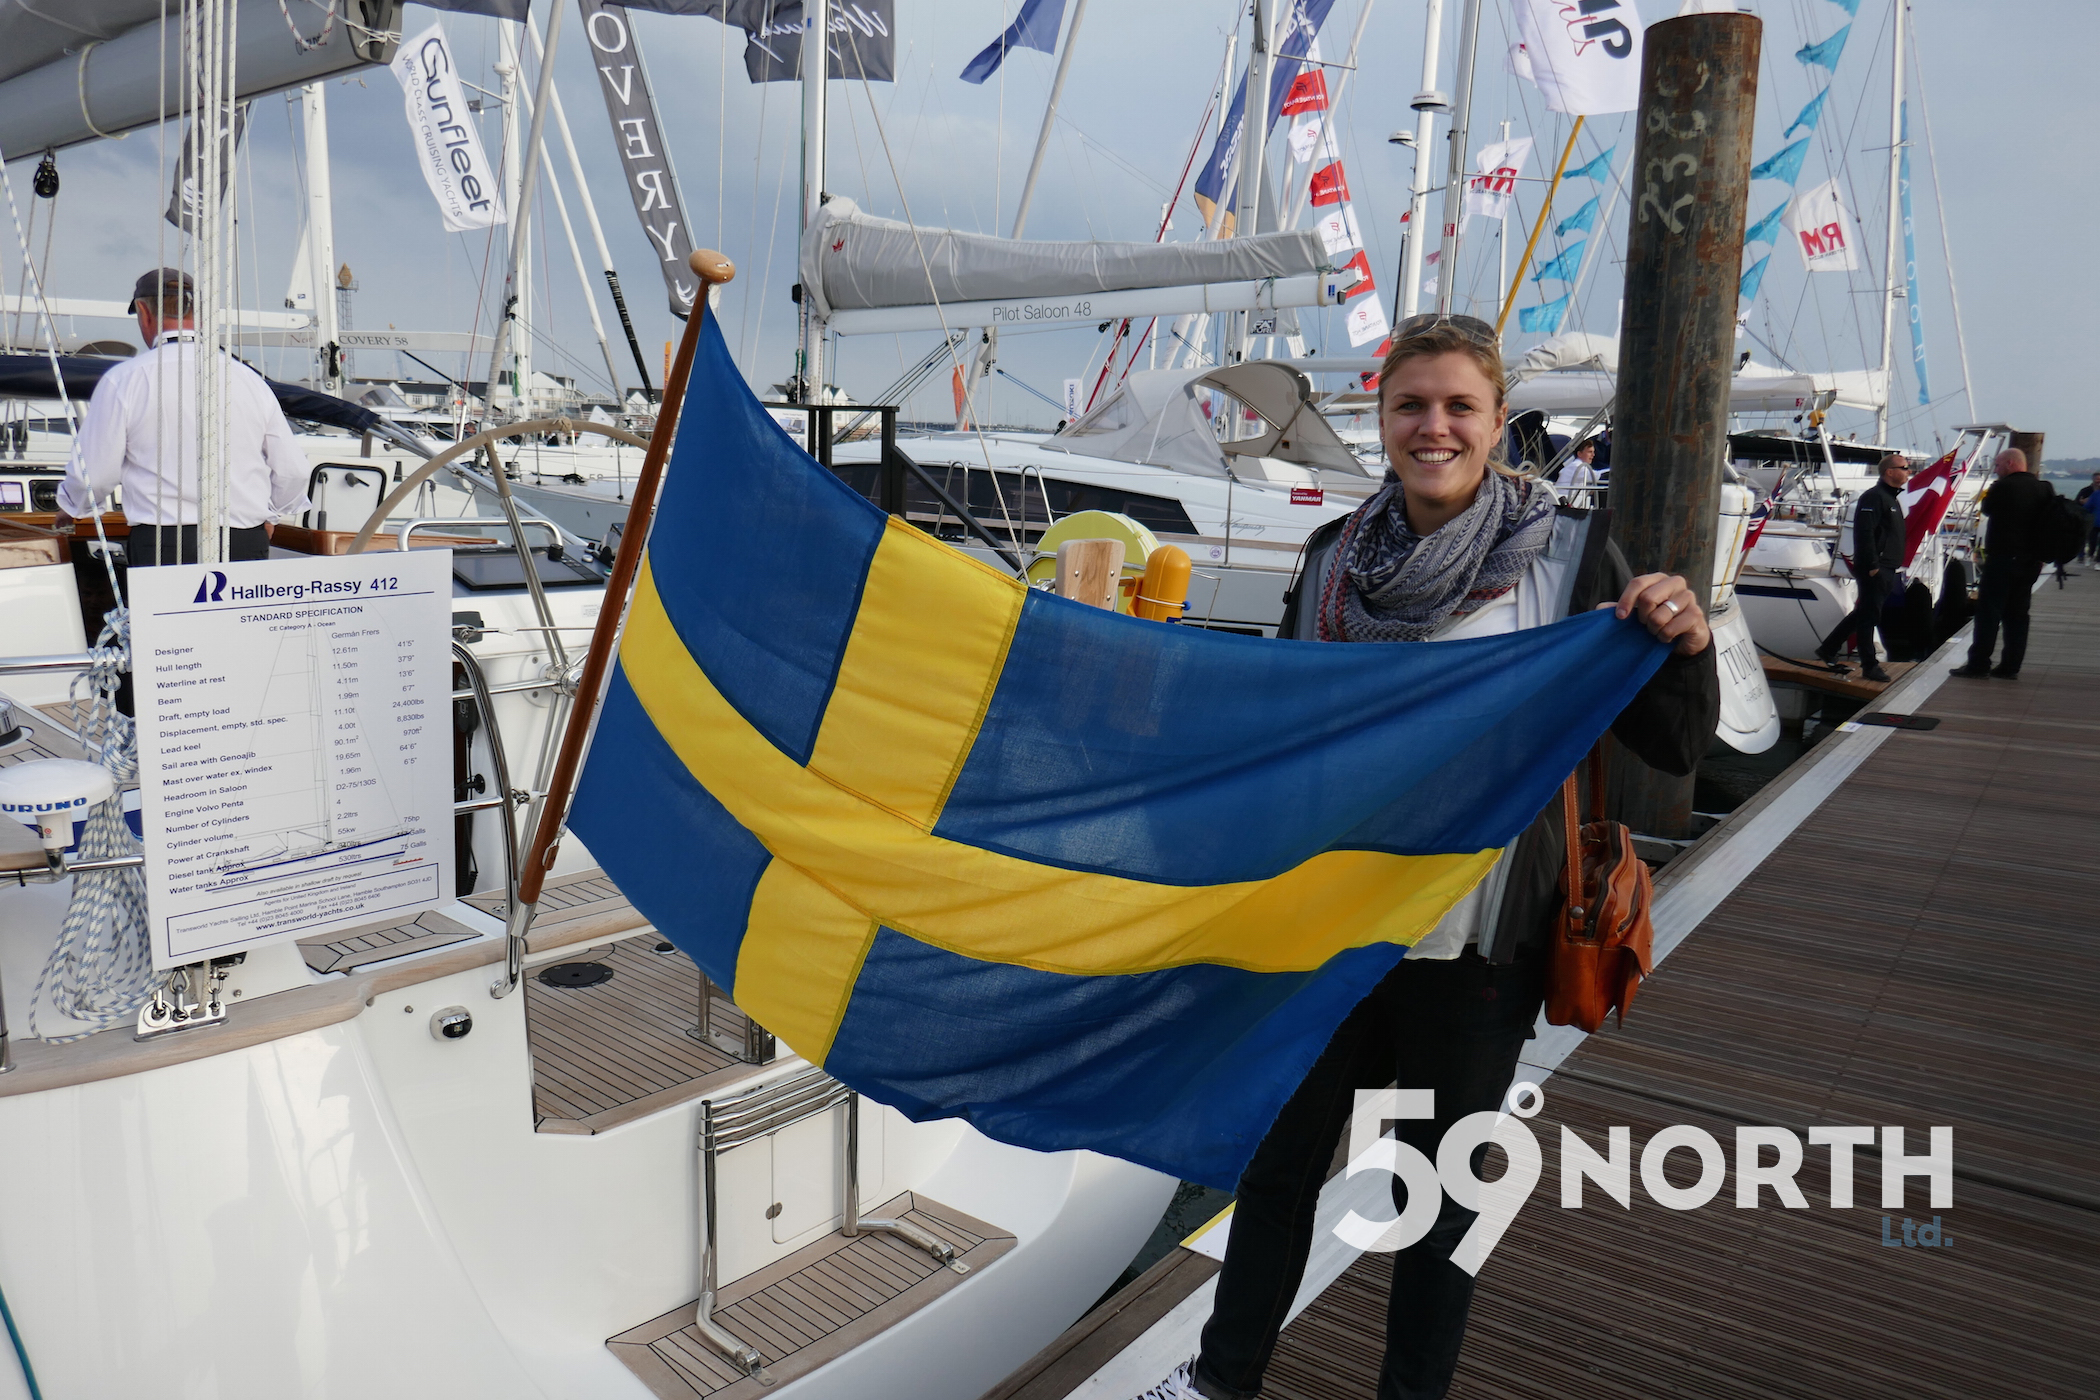 Of course lots of Swedish boat at the Southampton Show! Mia happy to see her flag! Sept. 2016